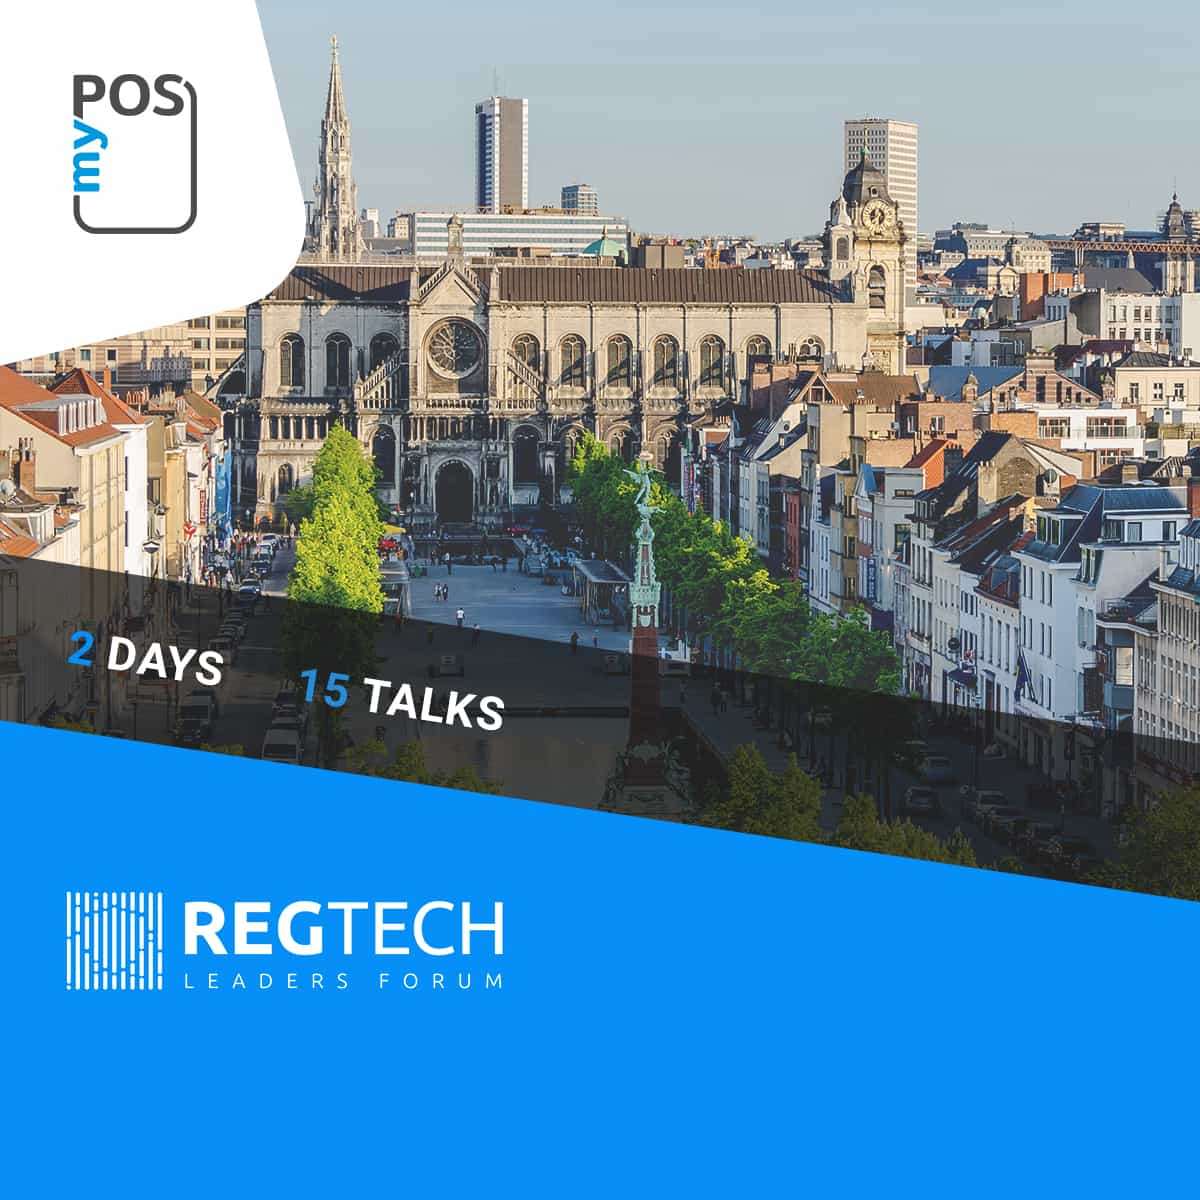 From RegTech to FinTech – myPOS at NPF Regtech Leaders Forum 2017